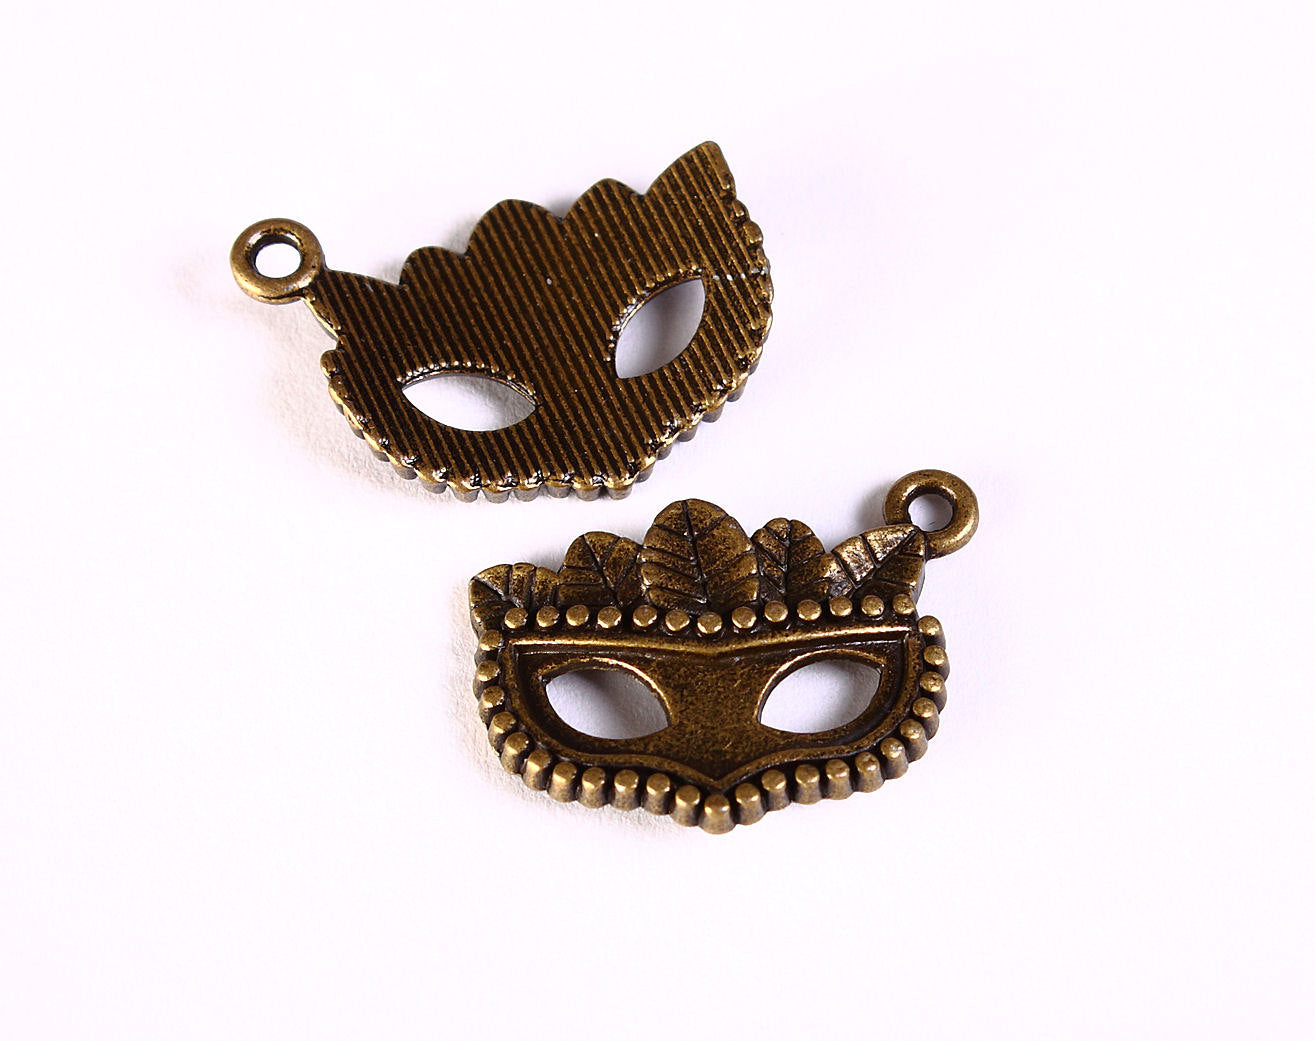 Mask and feathers antique brass charm - Mask pendant - 22mm x 15mm - 4 pieces (1287)